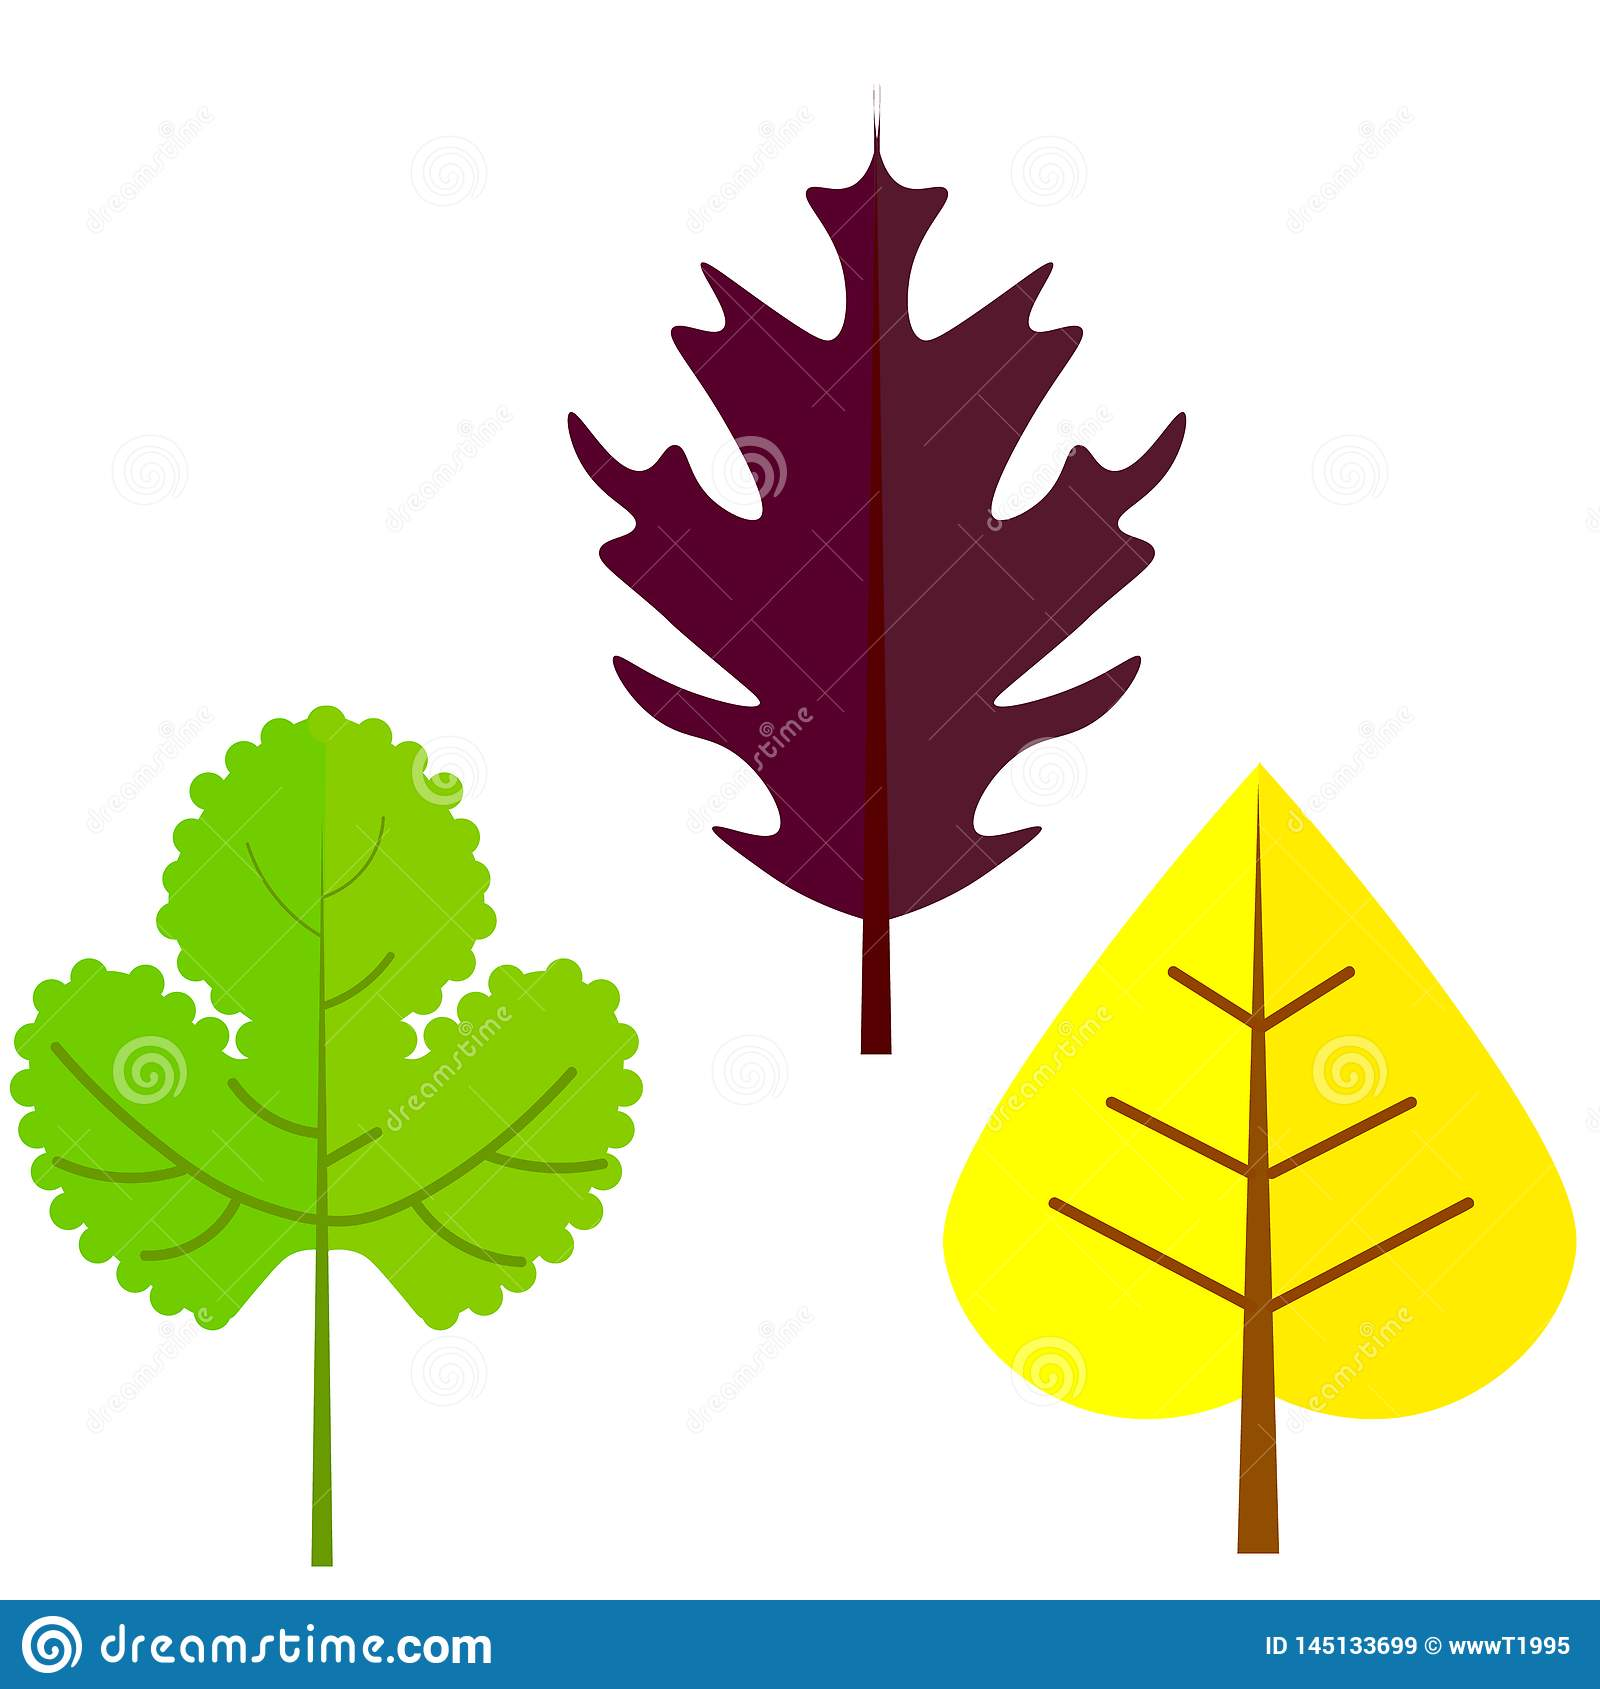 Flat vector illustration: Silhouettes of tree leaves